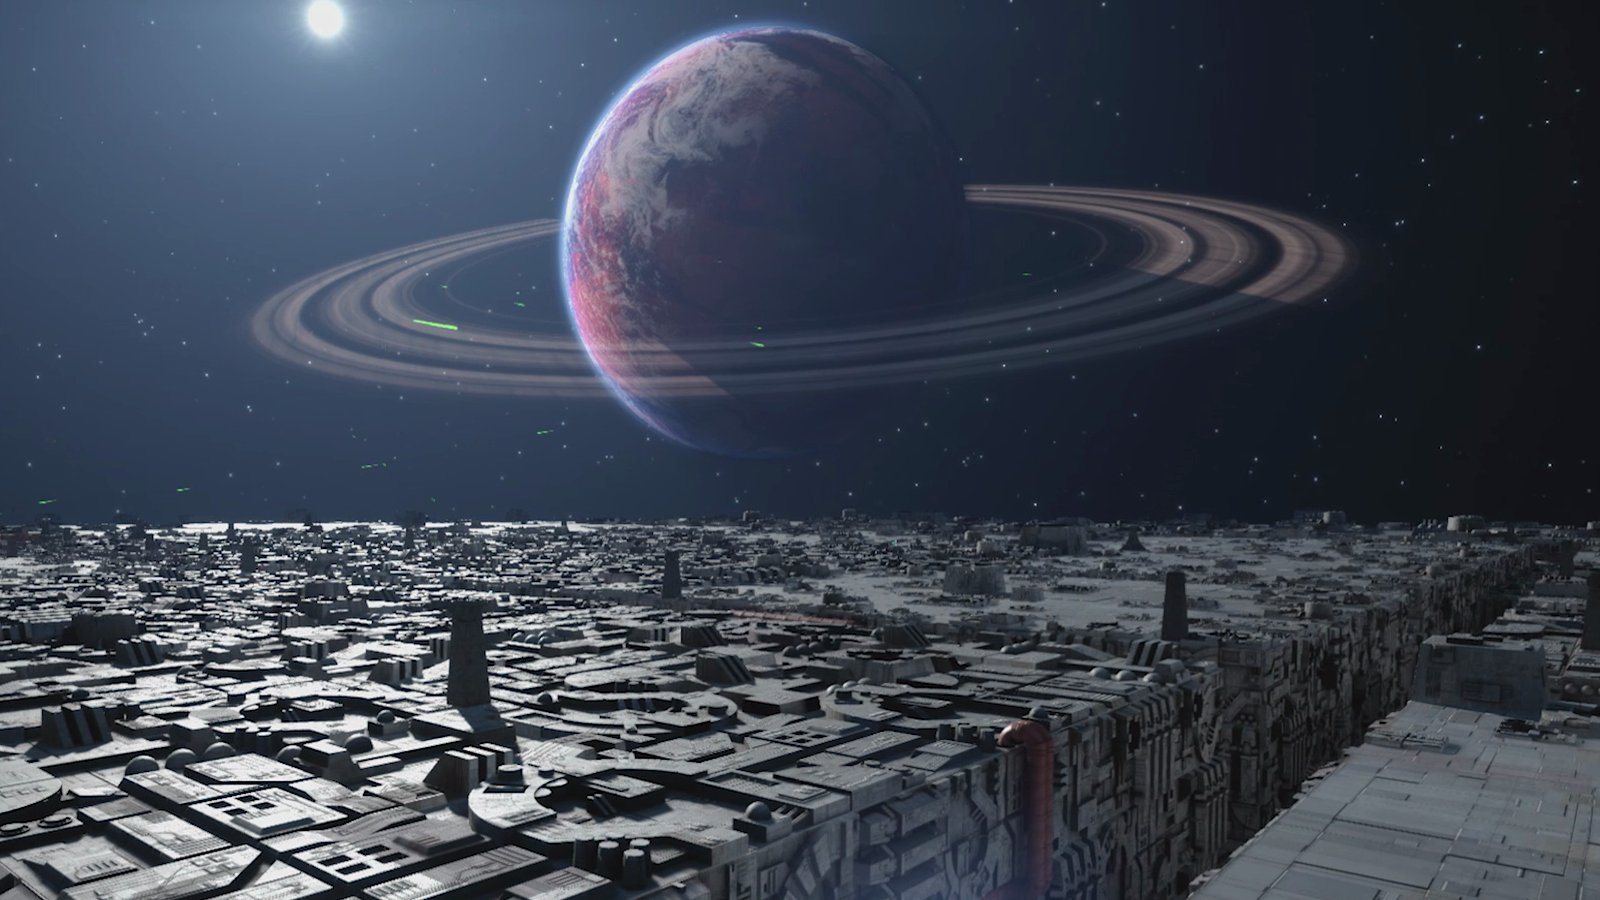 New planet in Battlefront.